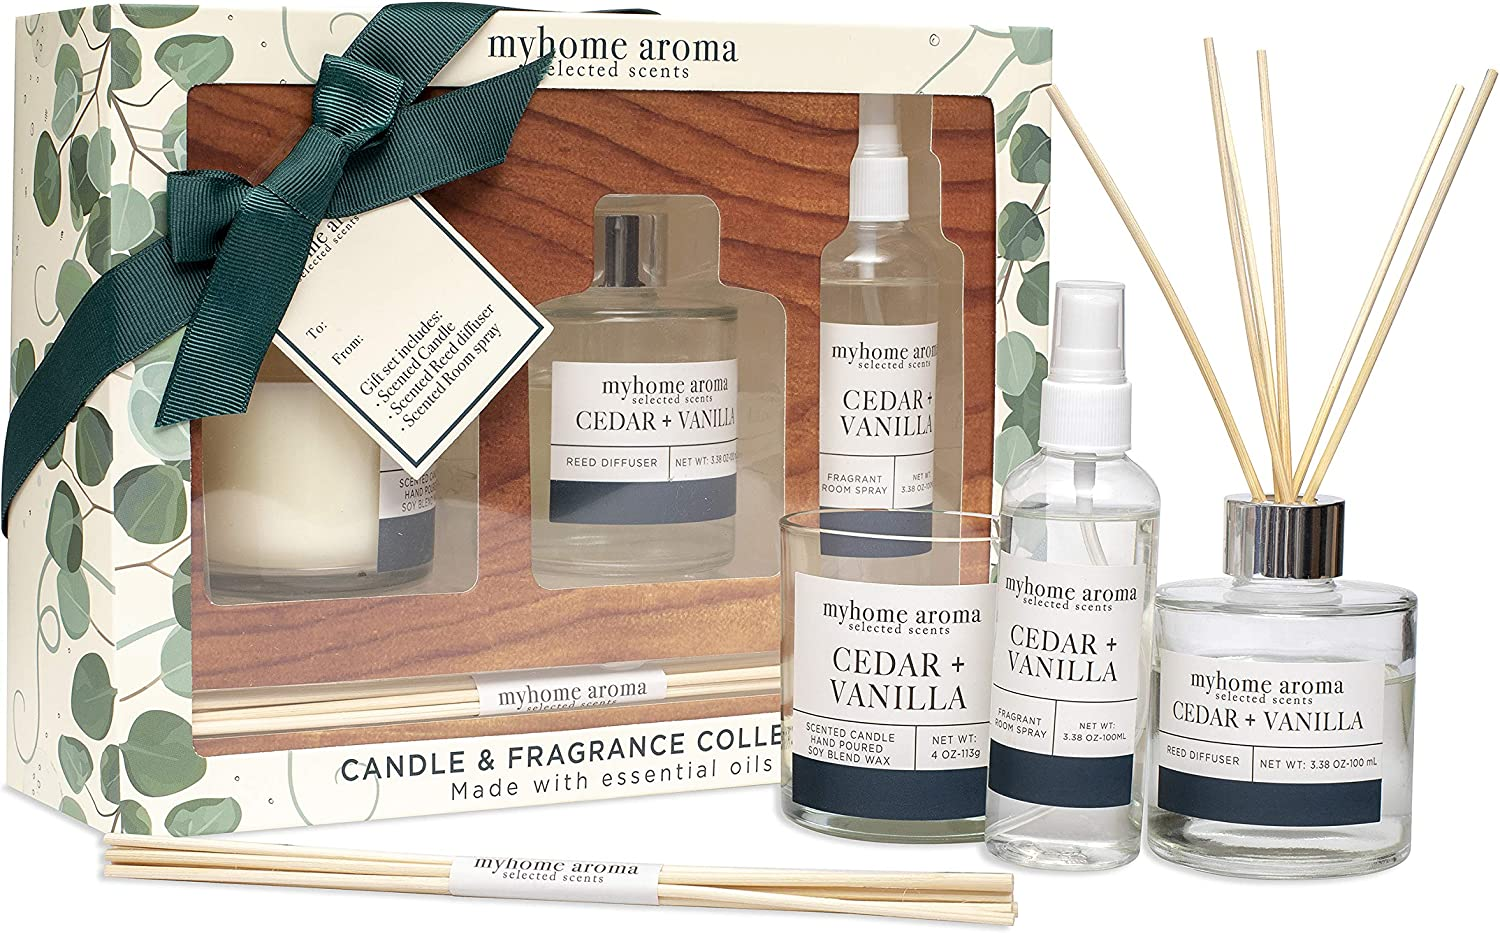 myhome aroma Candle & Fragrance Collection Gift Box Include Oil Reed Diffuser Scented Candle & Perfume Room Spray Cedar + Vanilla